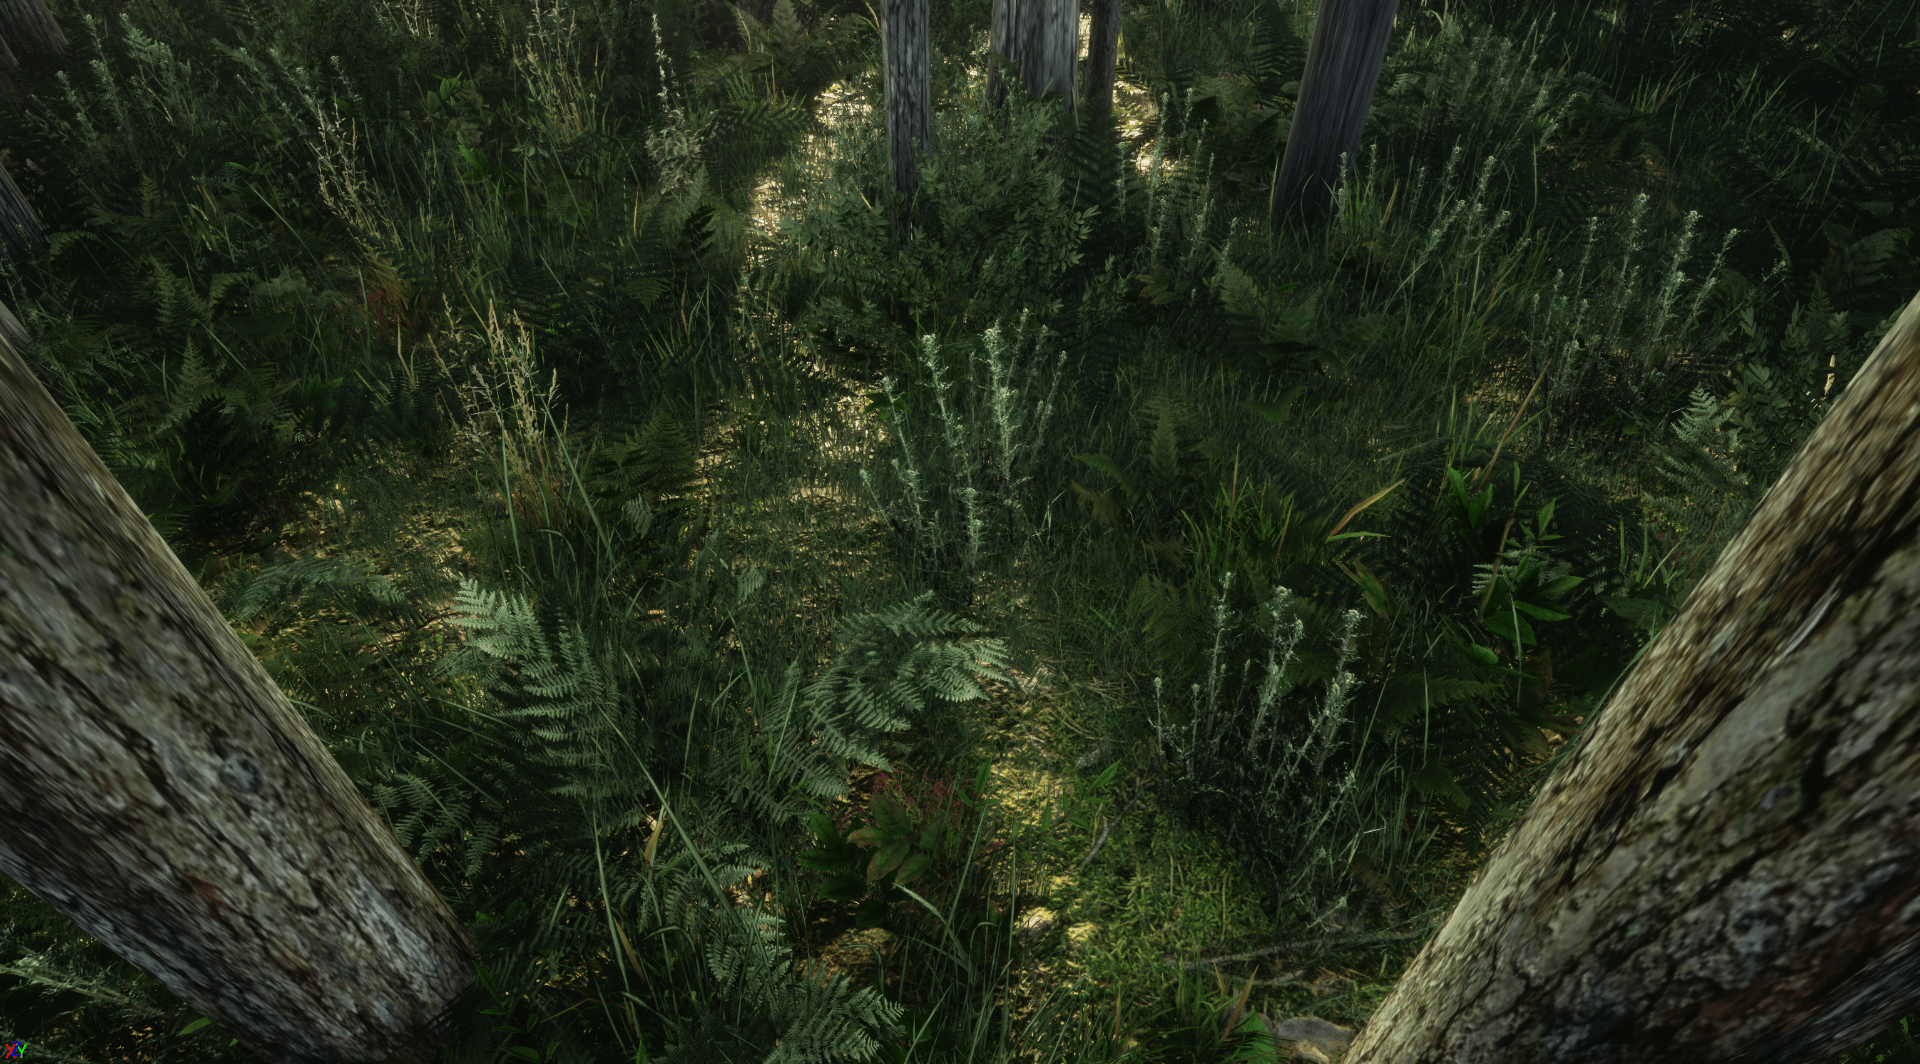 Simulating Forest Futures in VR